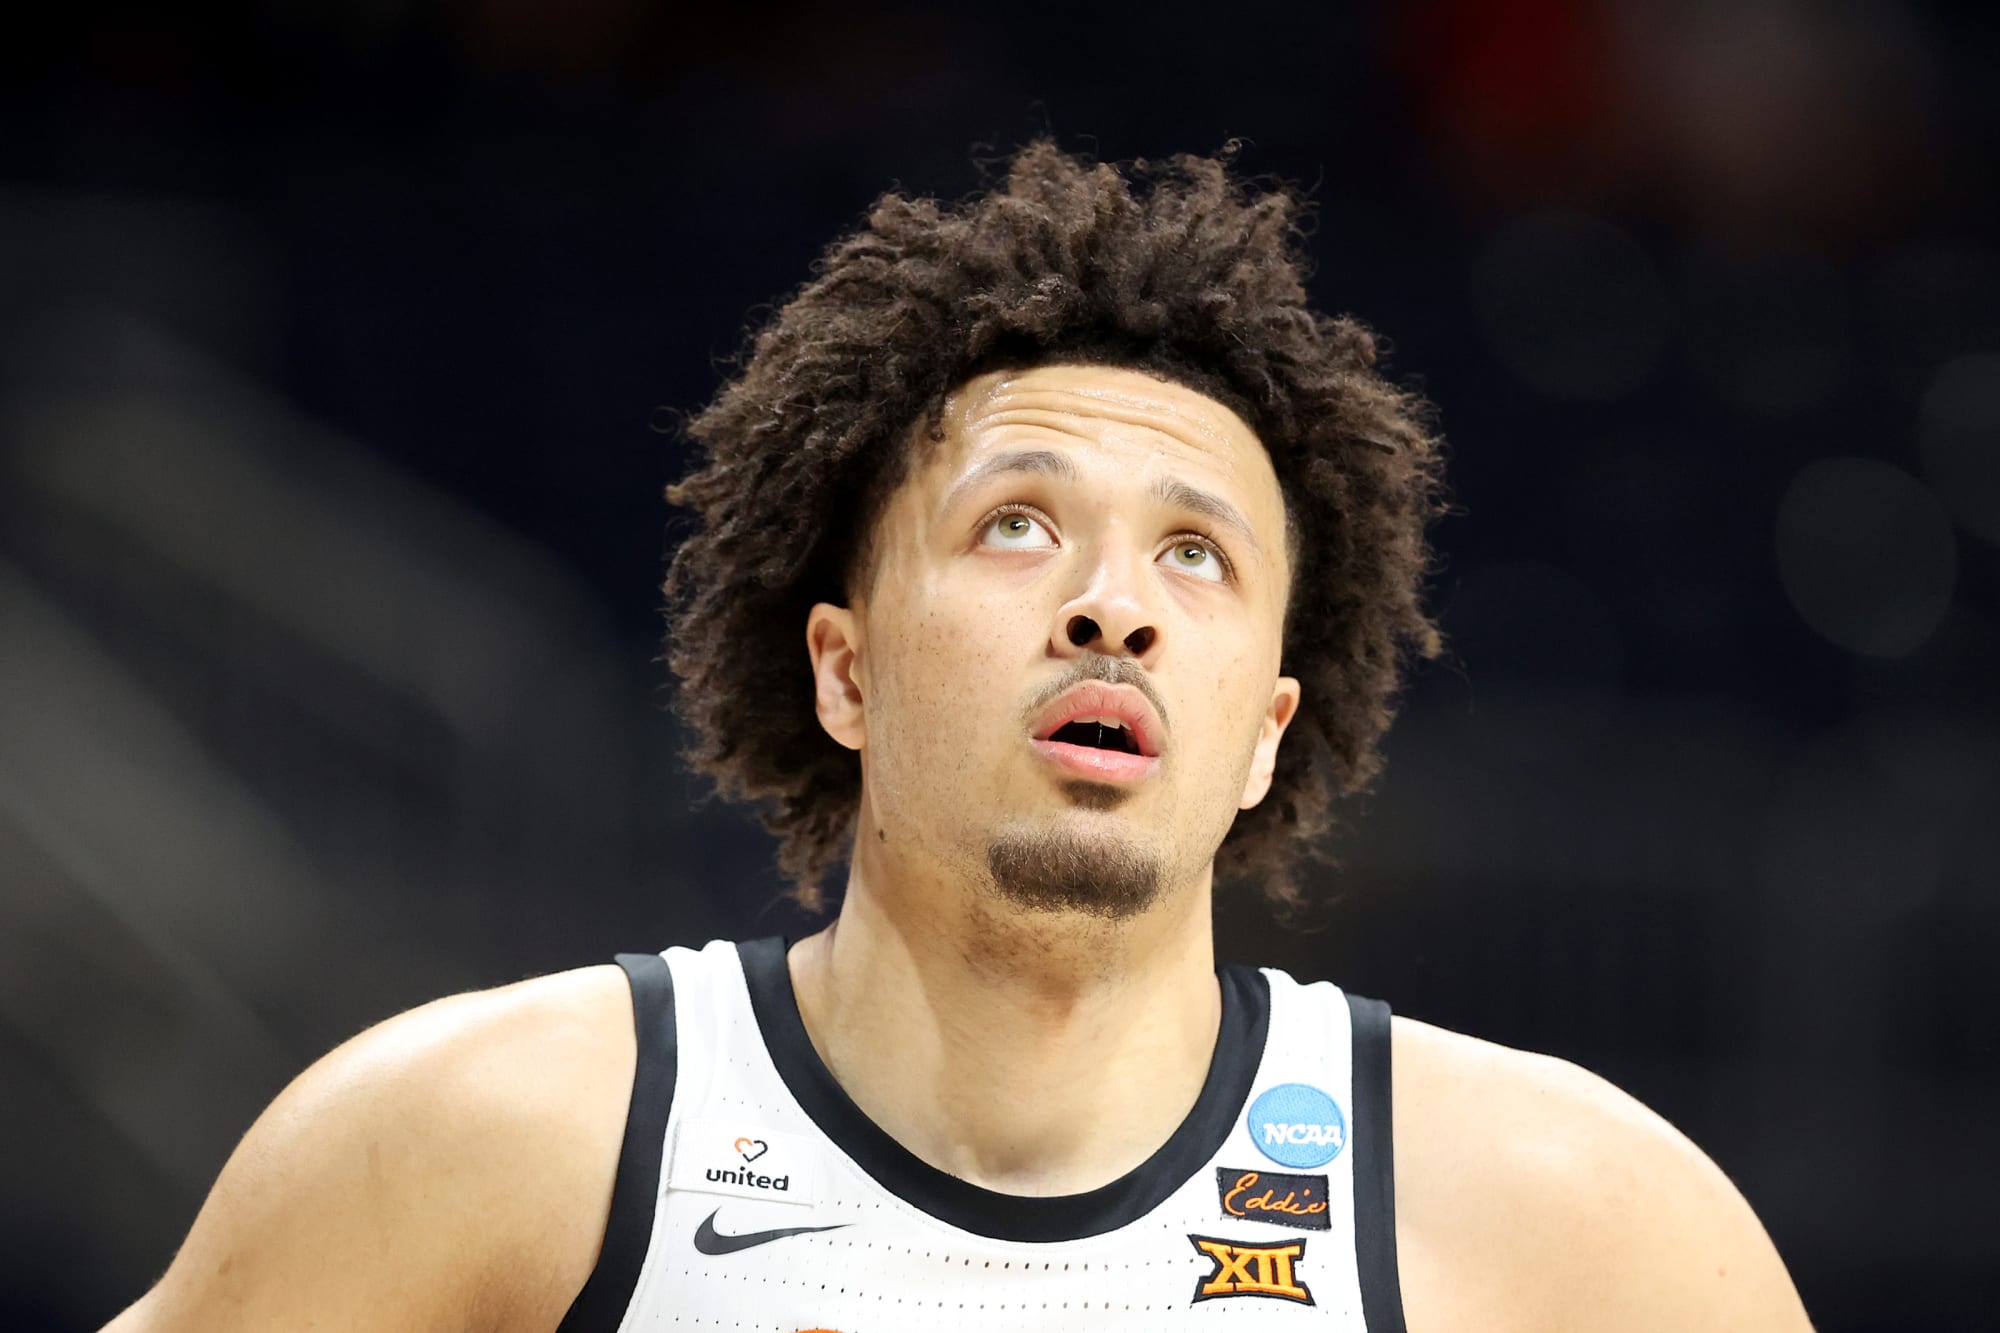 The Toronto Raptors would be the ideal landing spot for Cade Cunningham